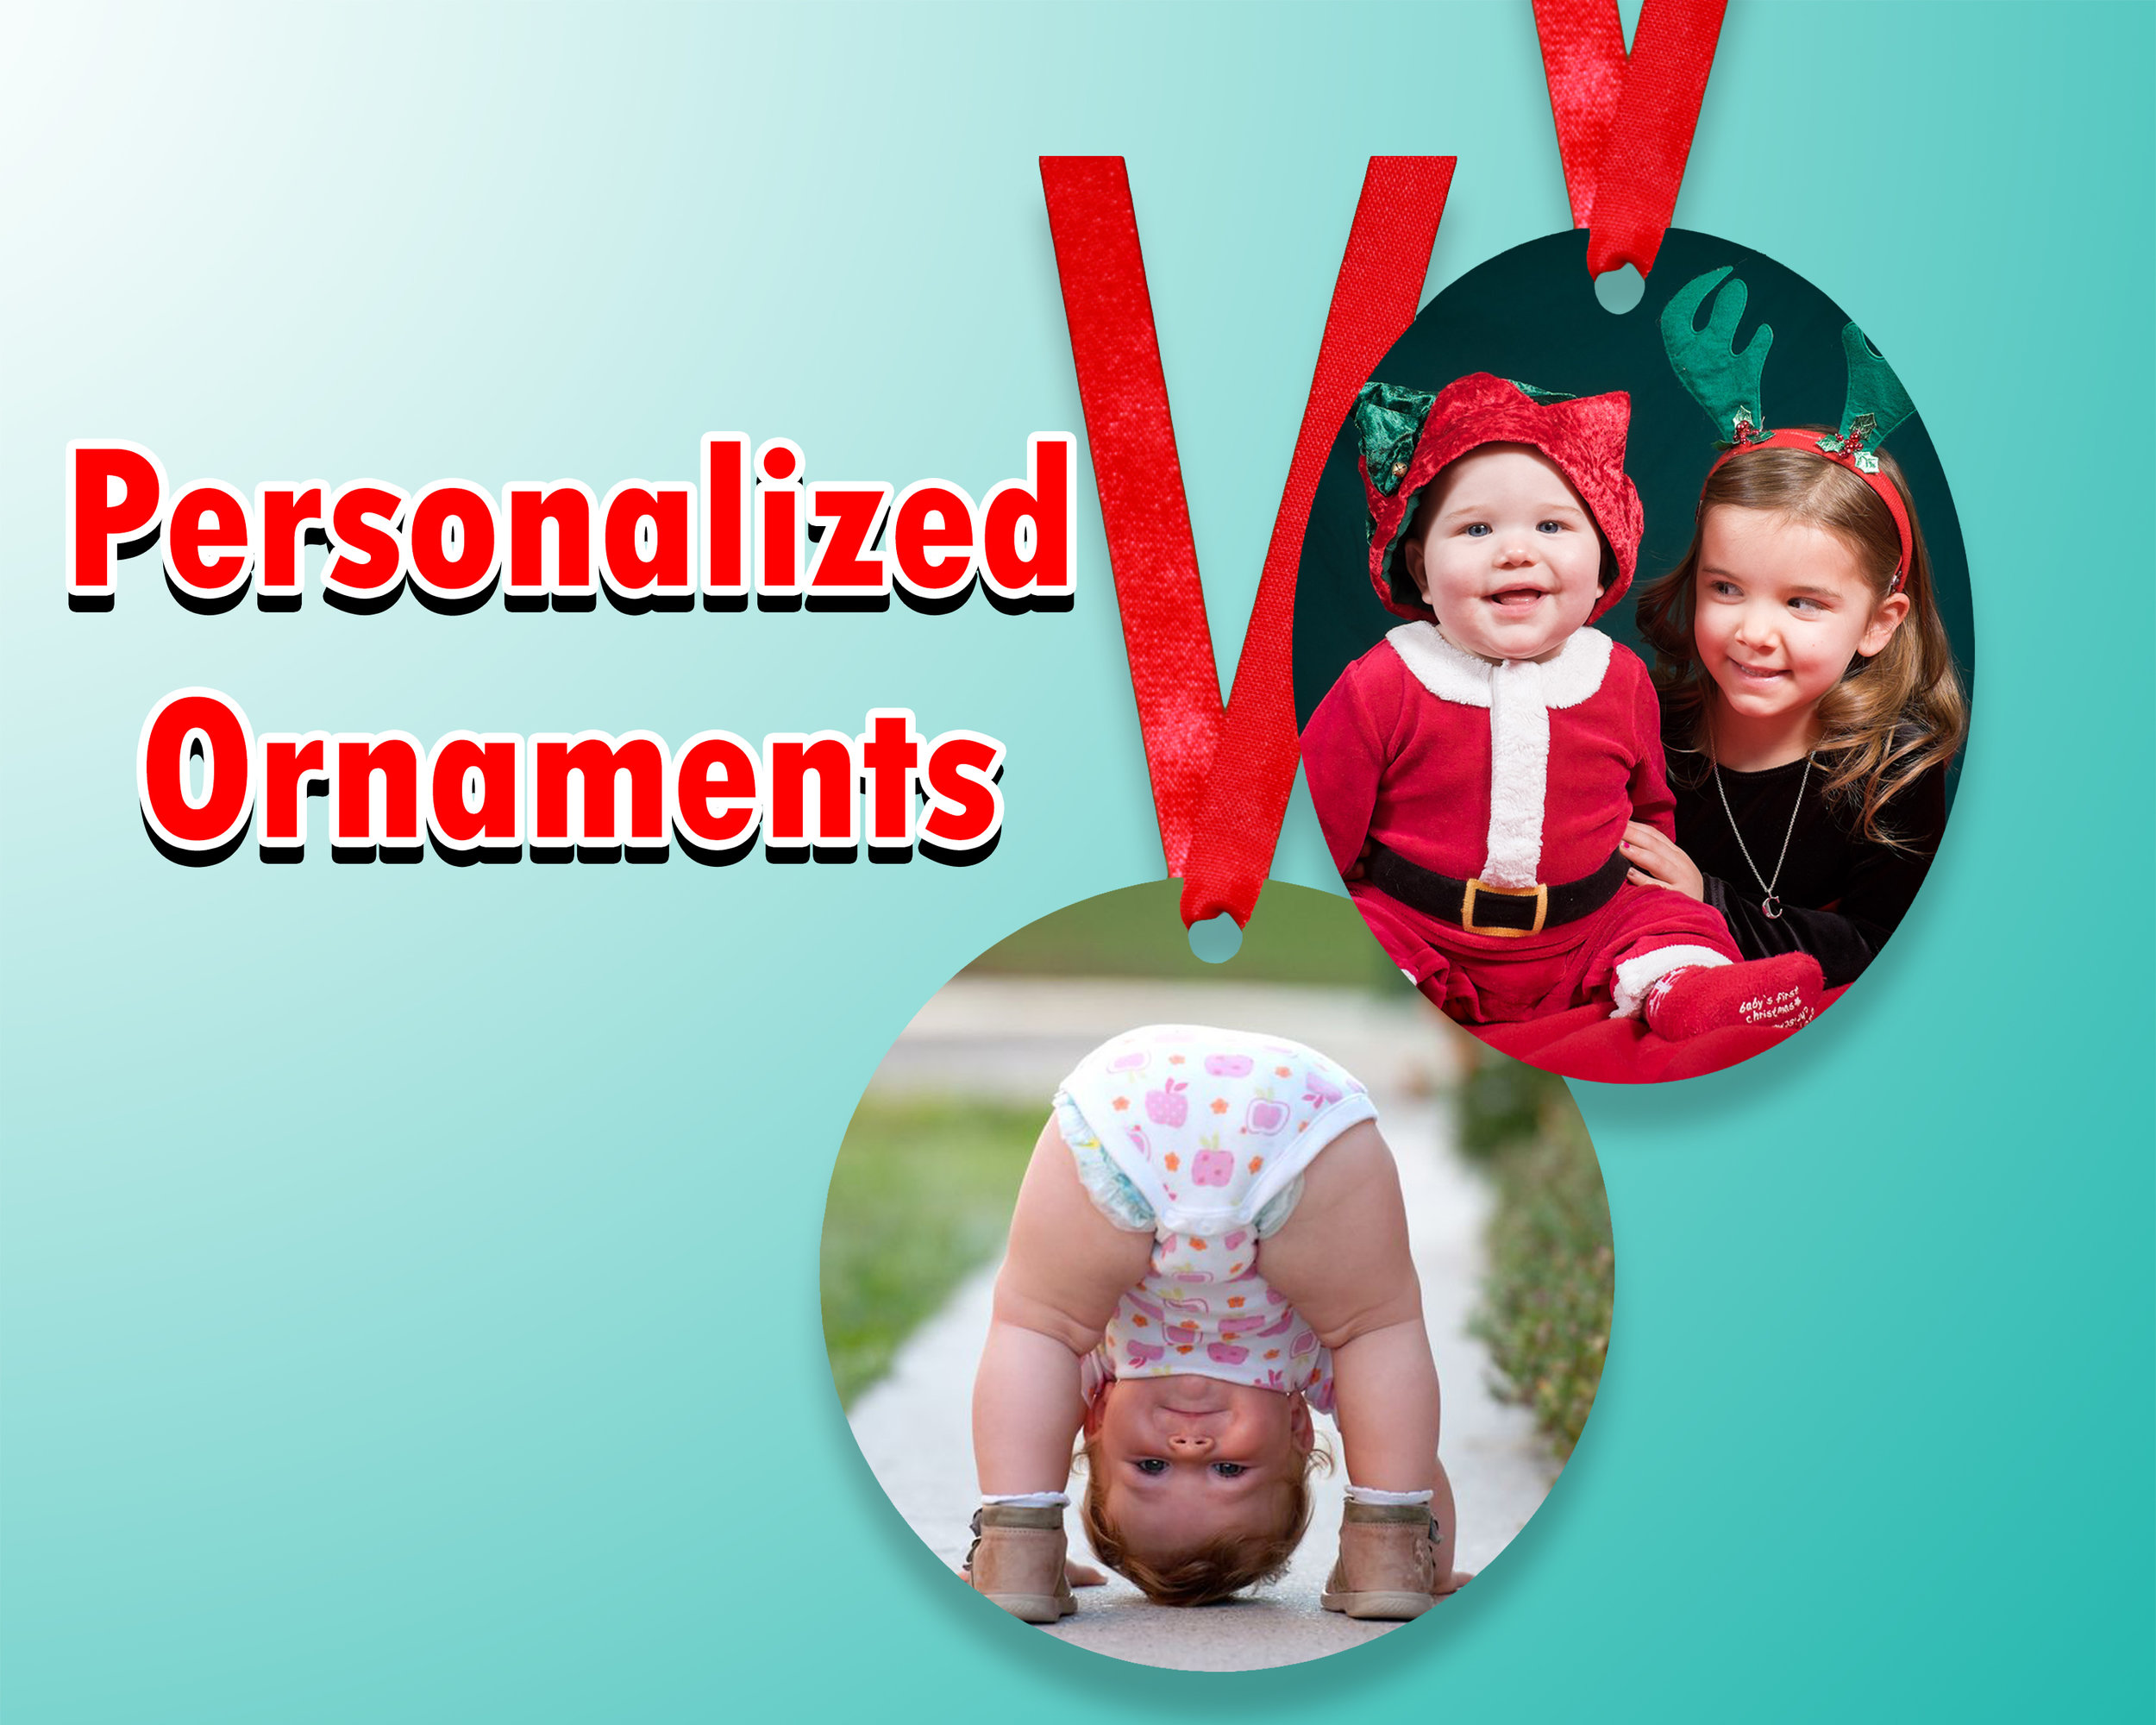 Personalized Ornaments.jpg